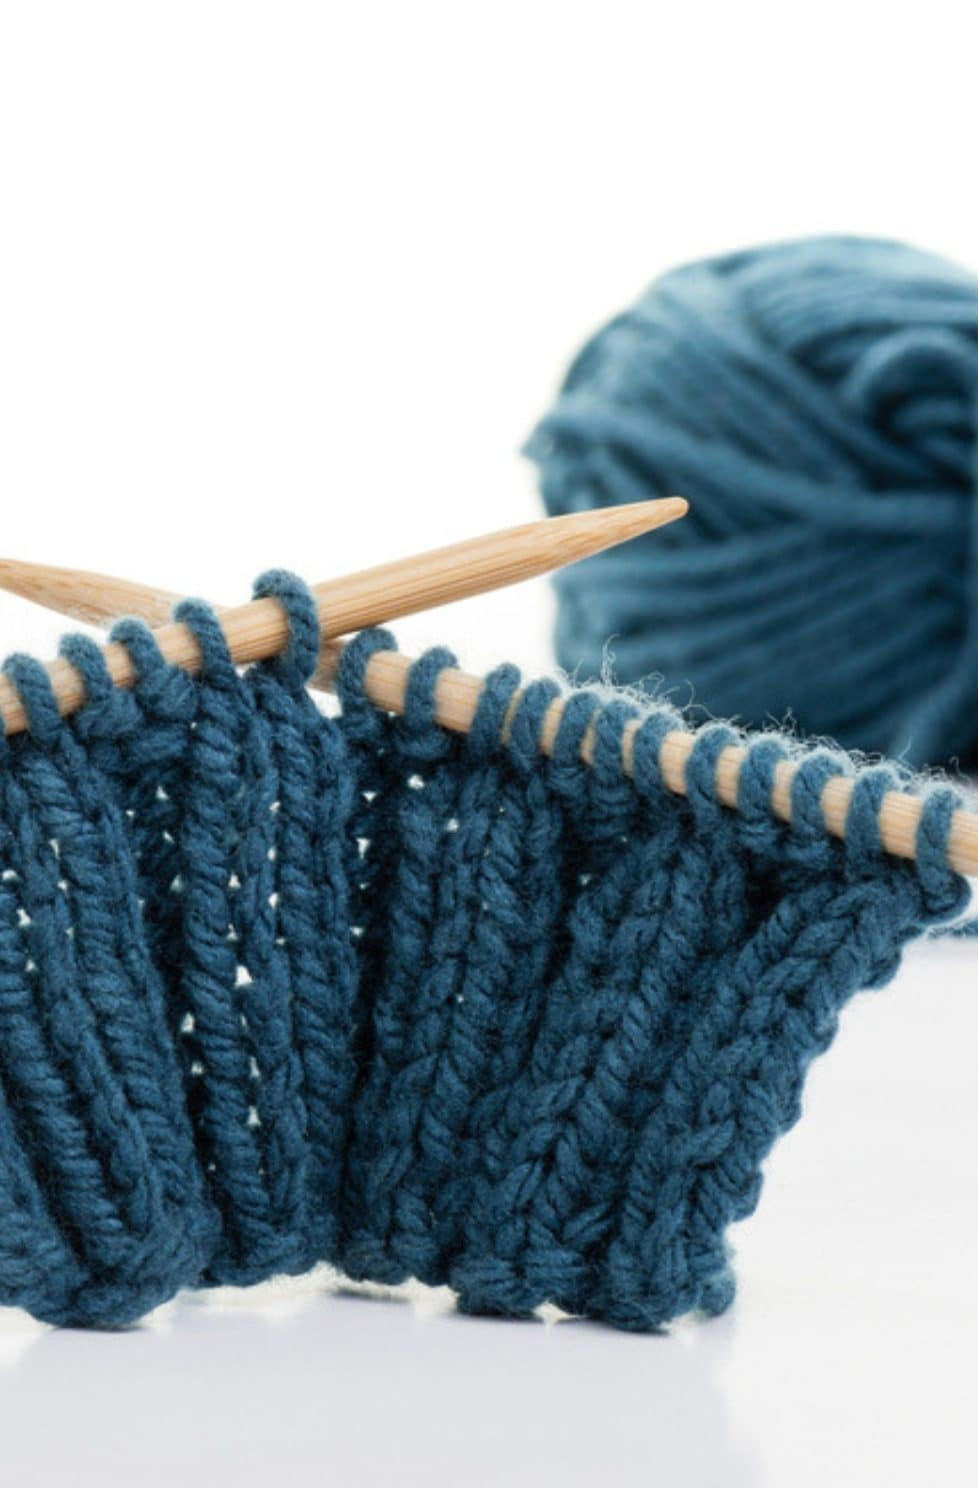 How To Knit – Rib Stitch